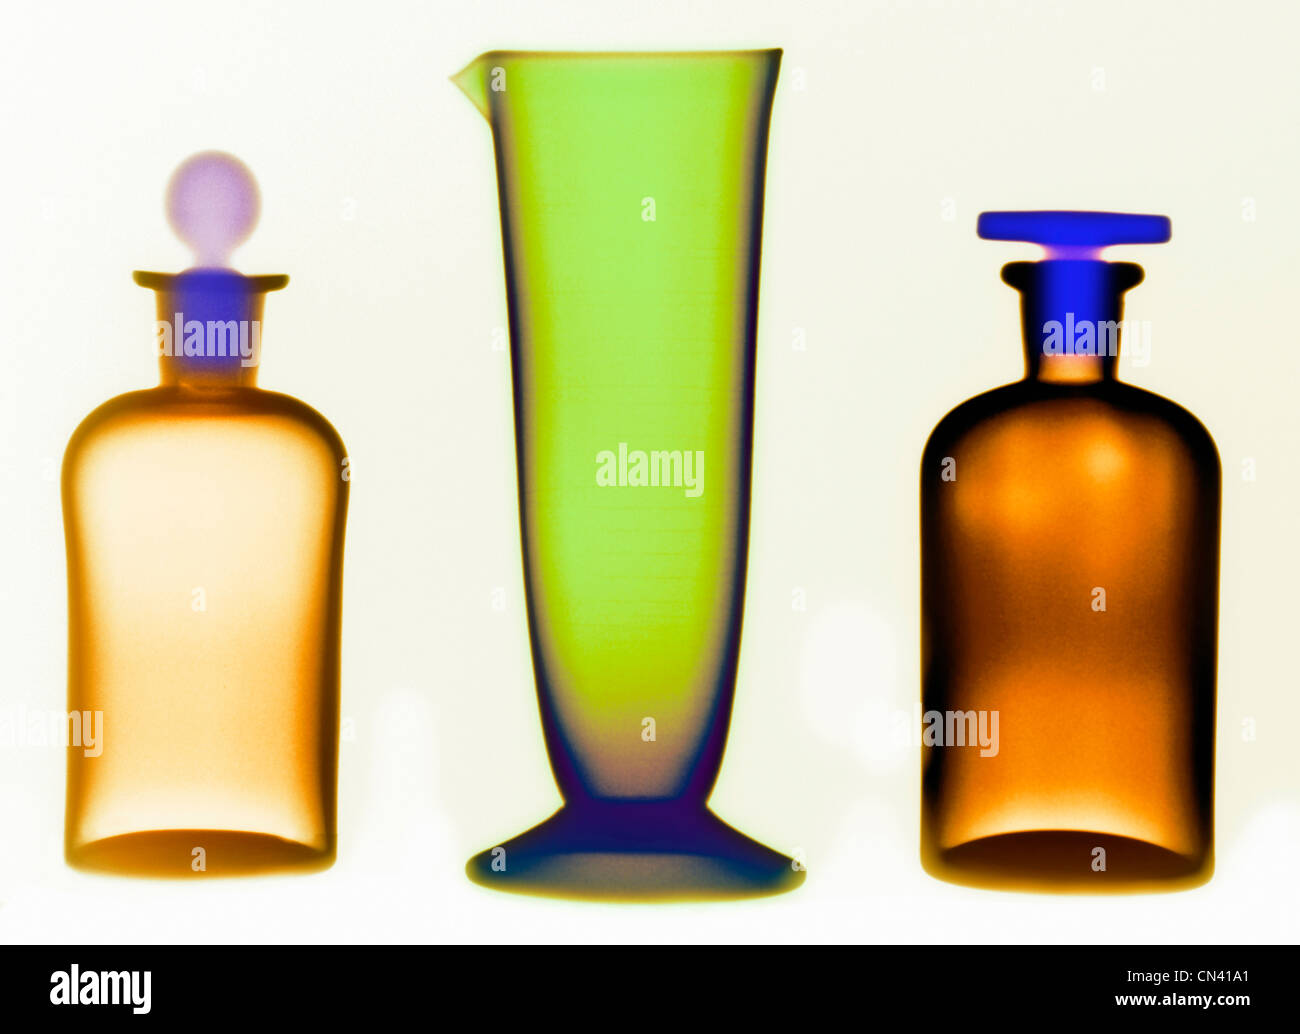 colorized x-ray of glassware bottles - Stock Image